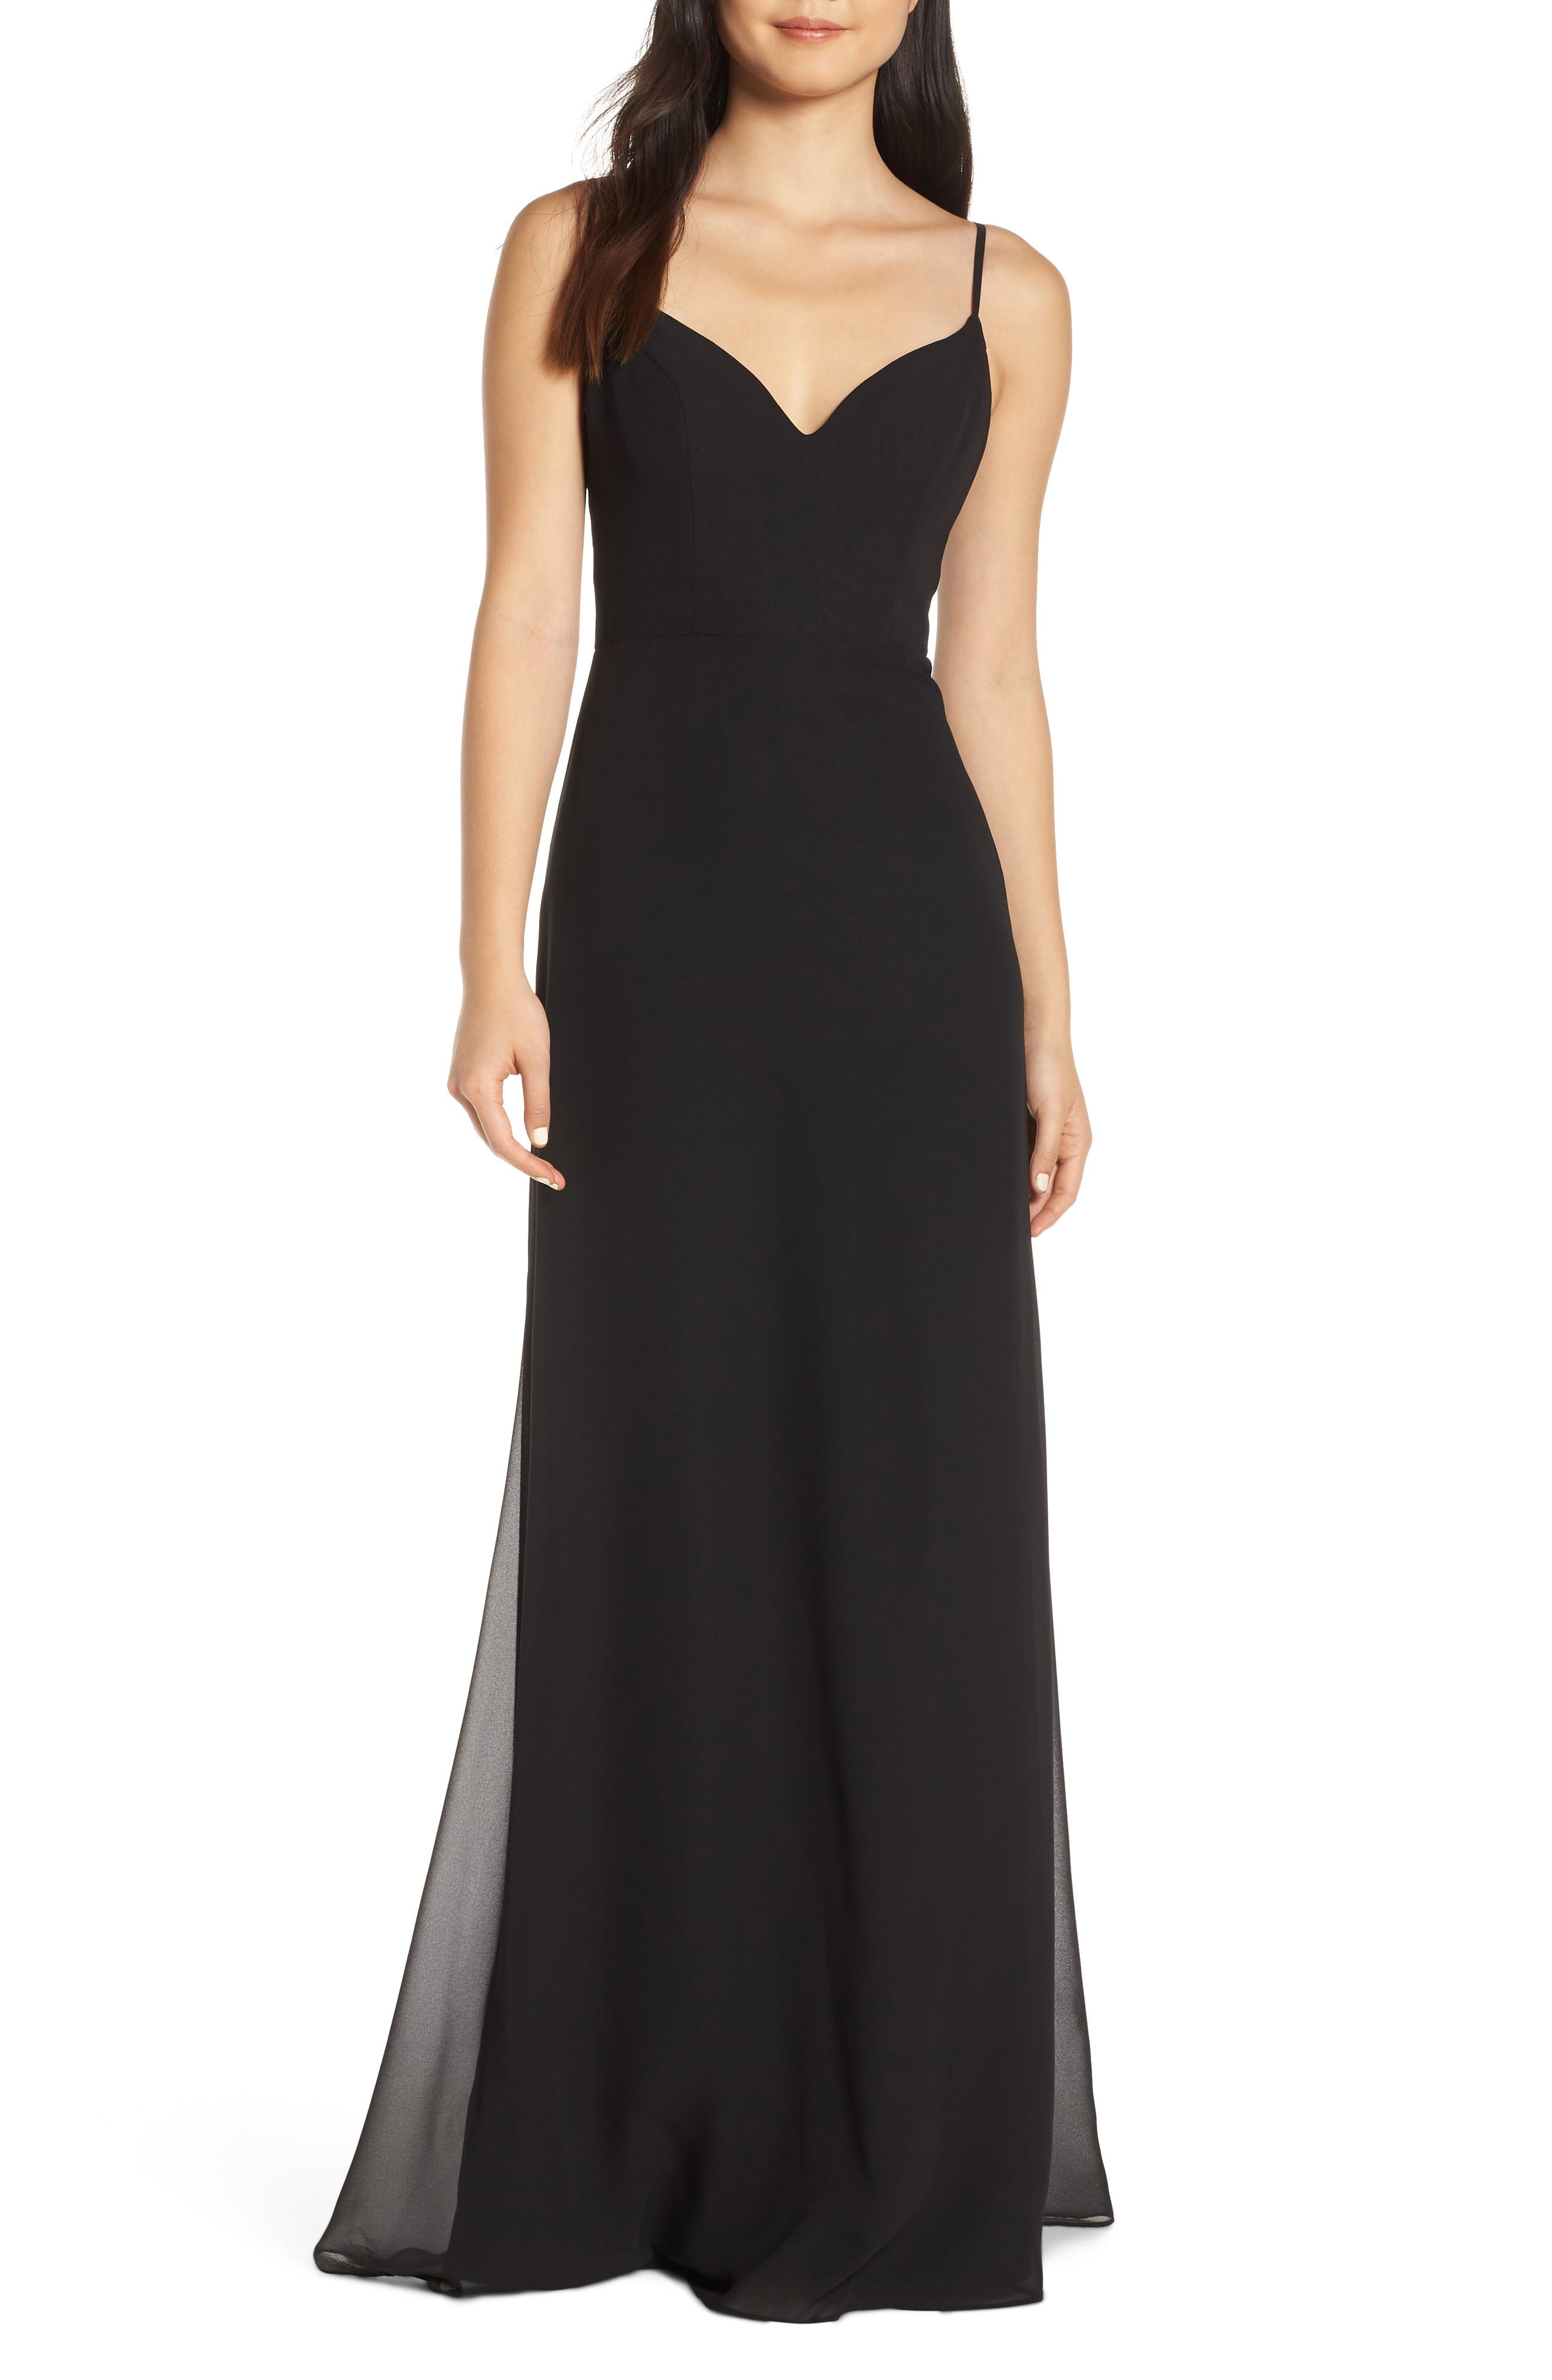 Hayley Paige Occasions V-Neck Chiffon Evening Dress, Black